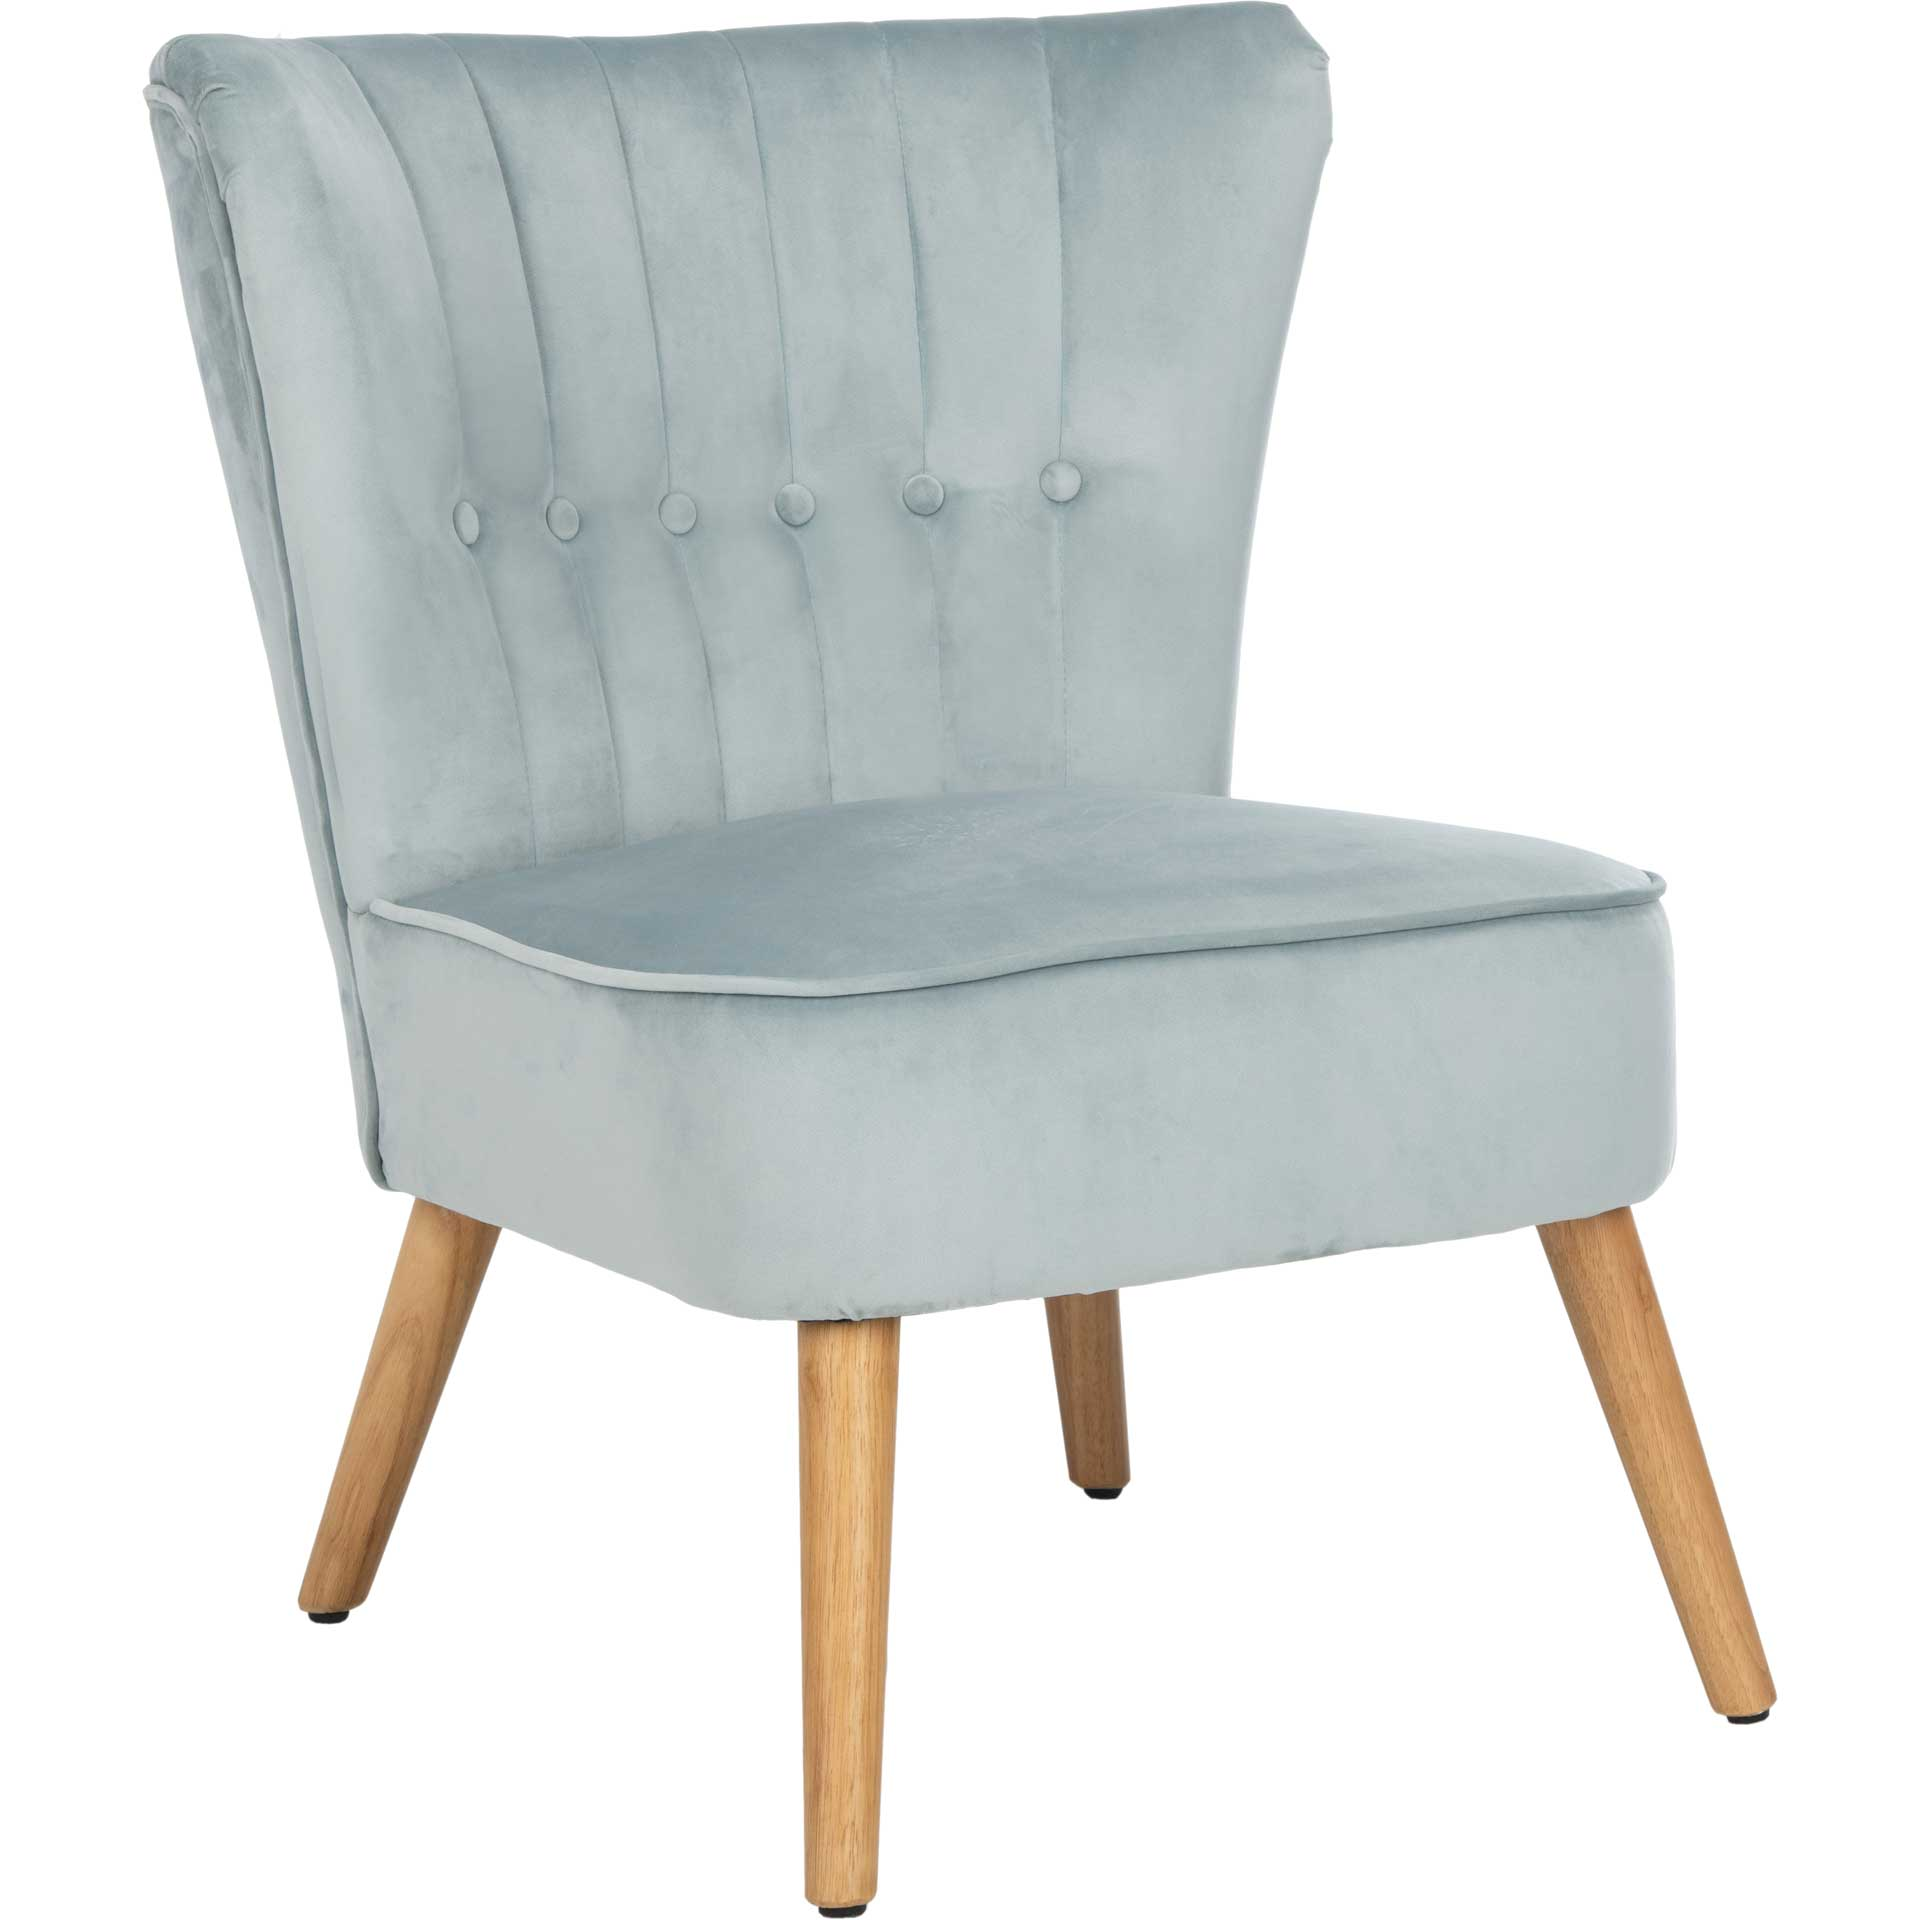 Juliet Mid Century Accent Chair Slate Blue/Natural